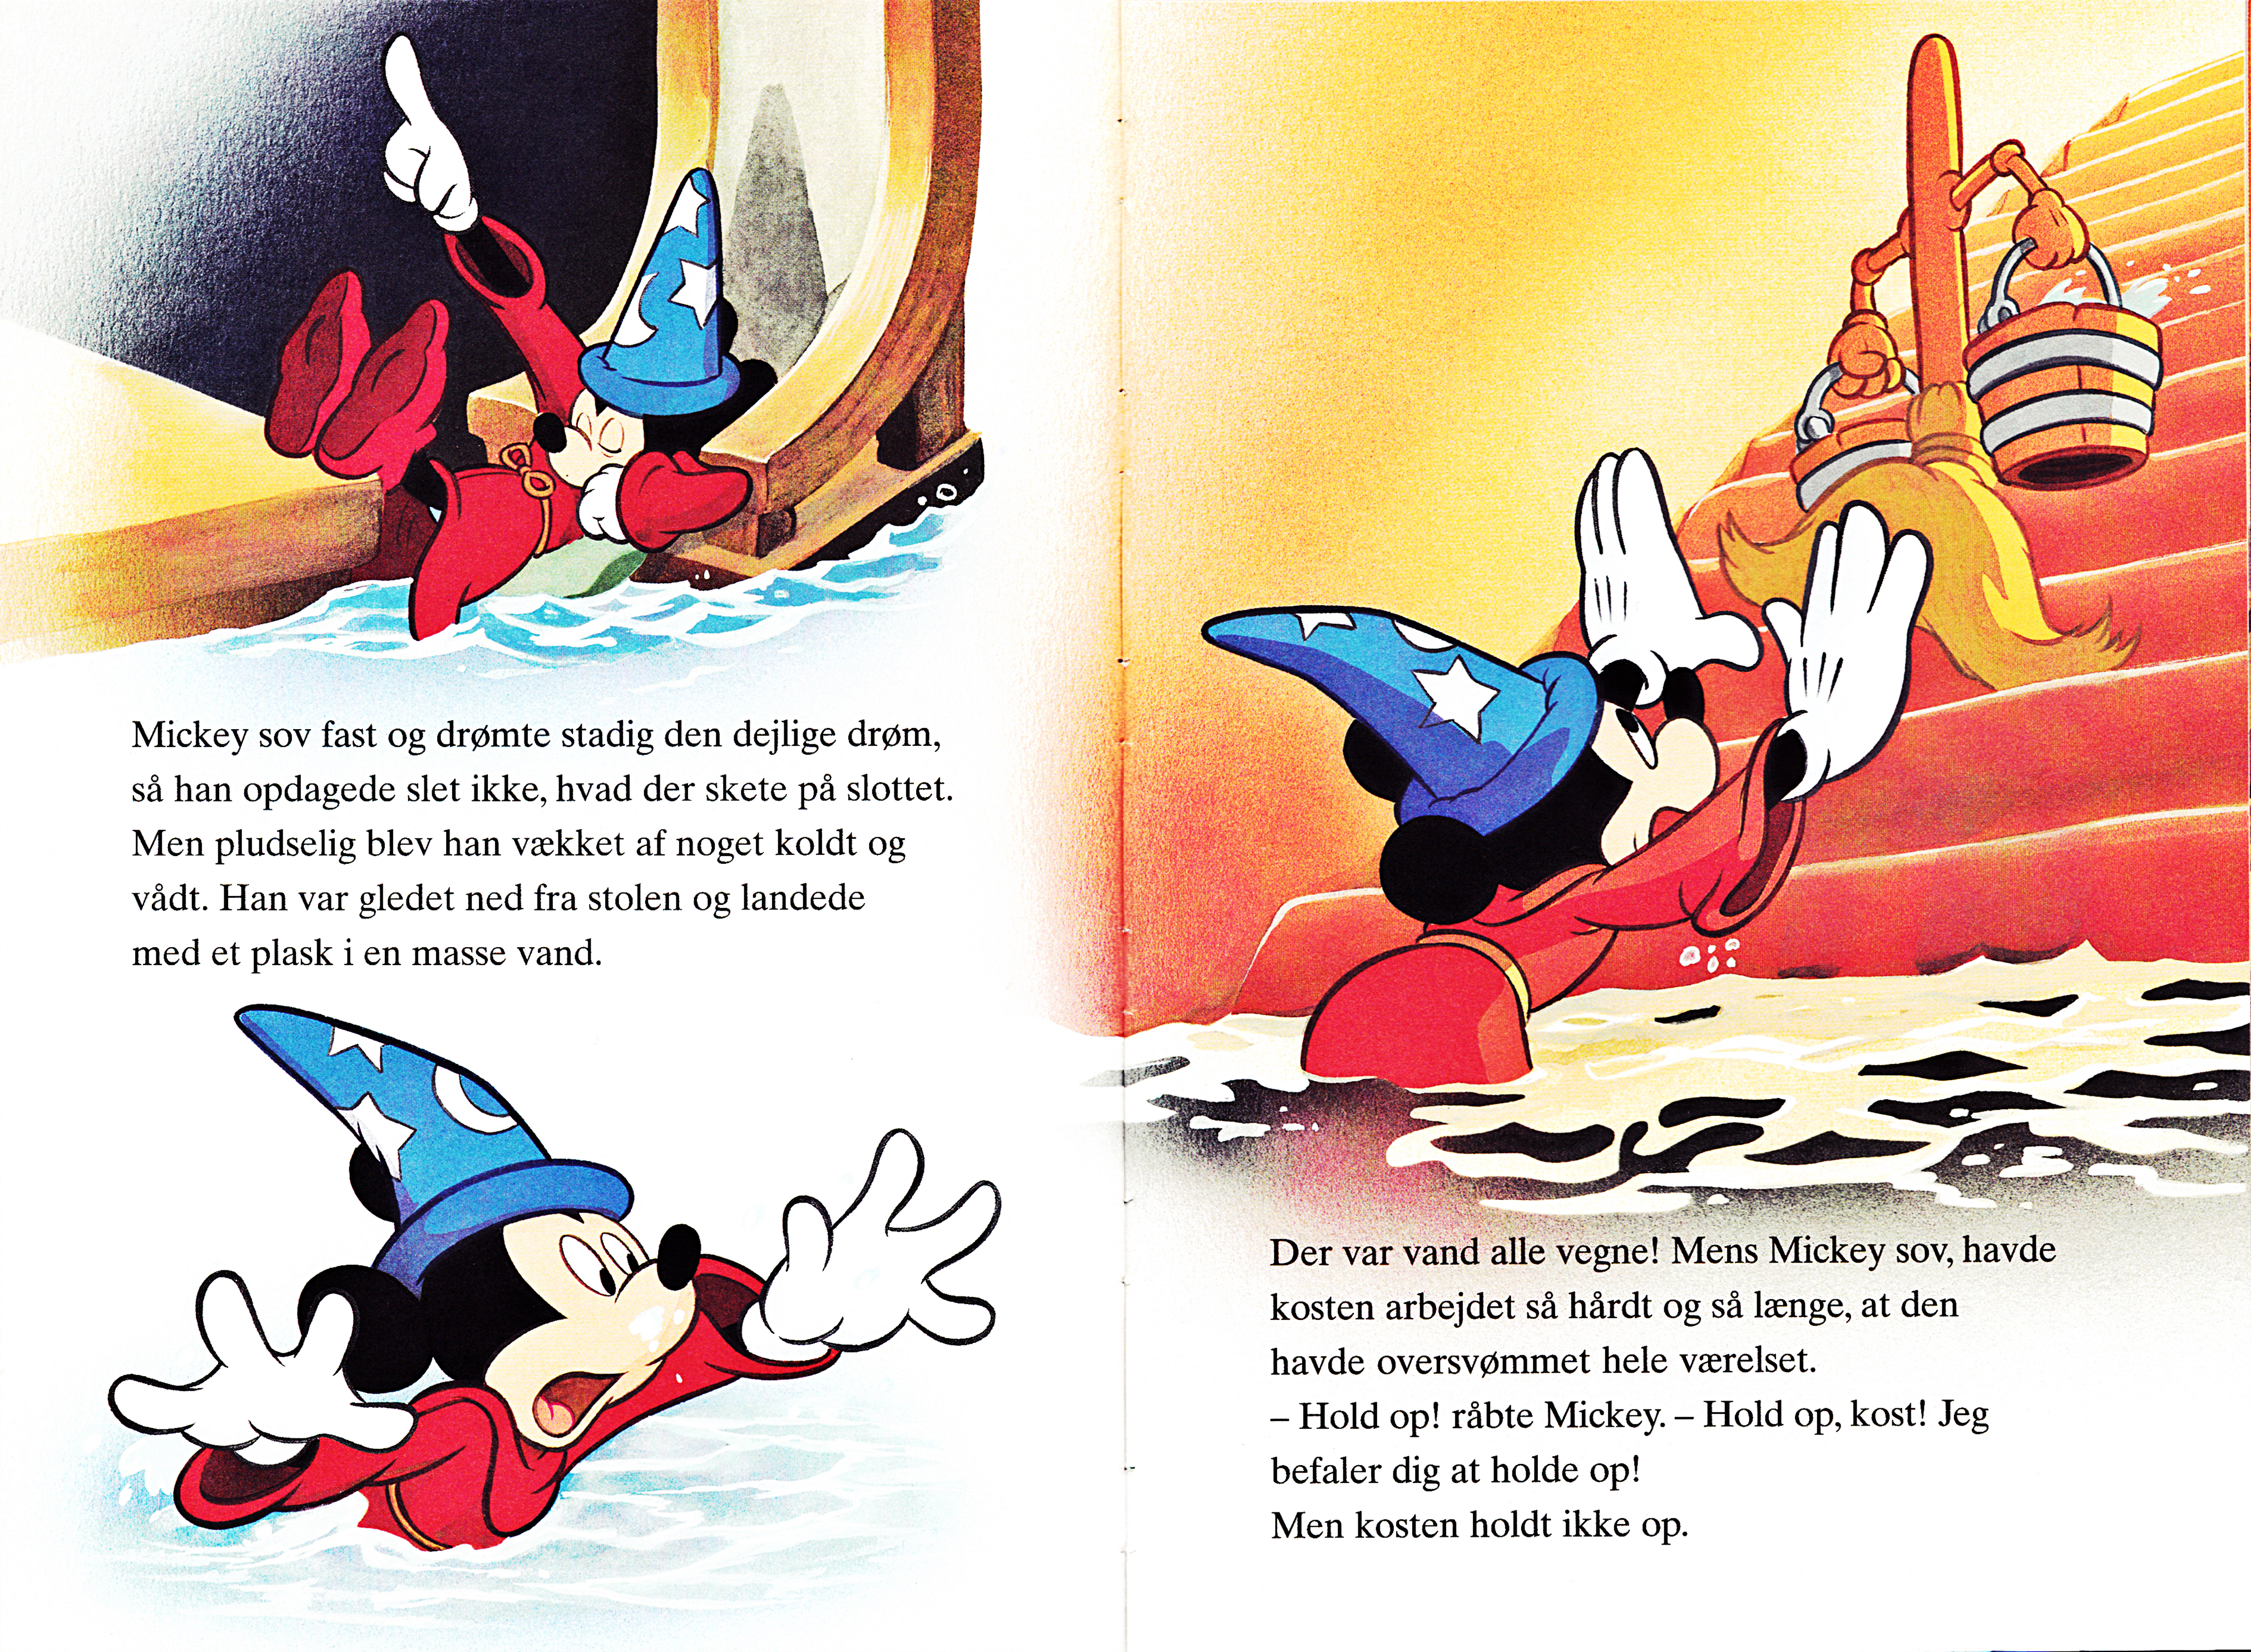 Walt Disney Book Images - Mickey Mouse